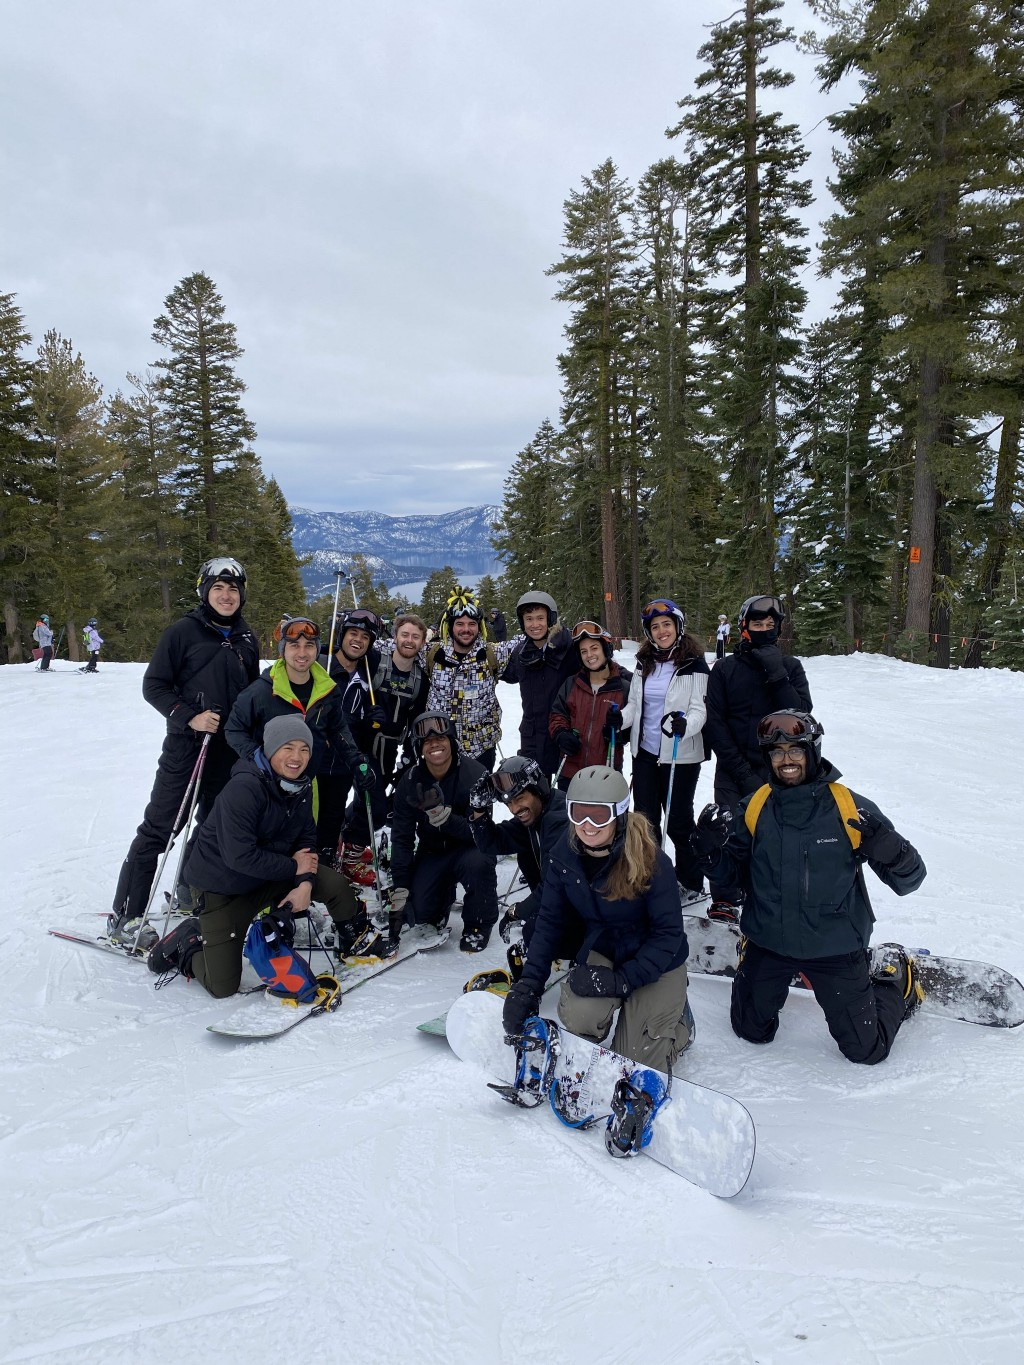 A group of adults in ski gear on a ski slope.